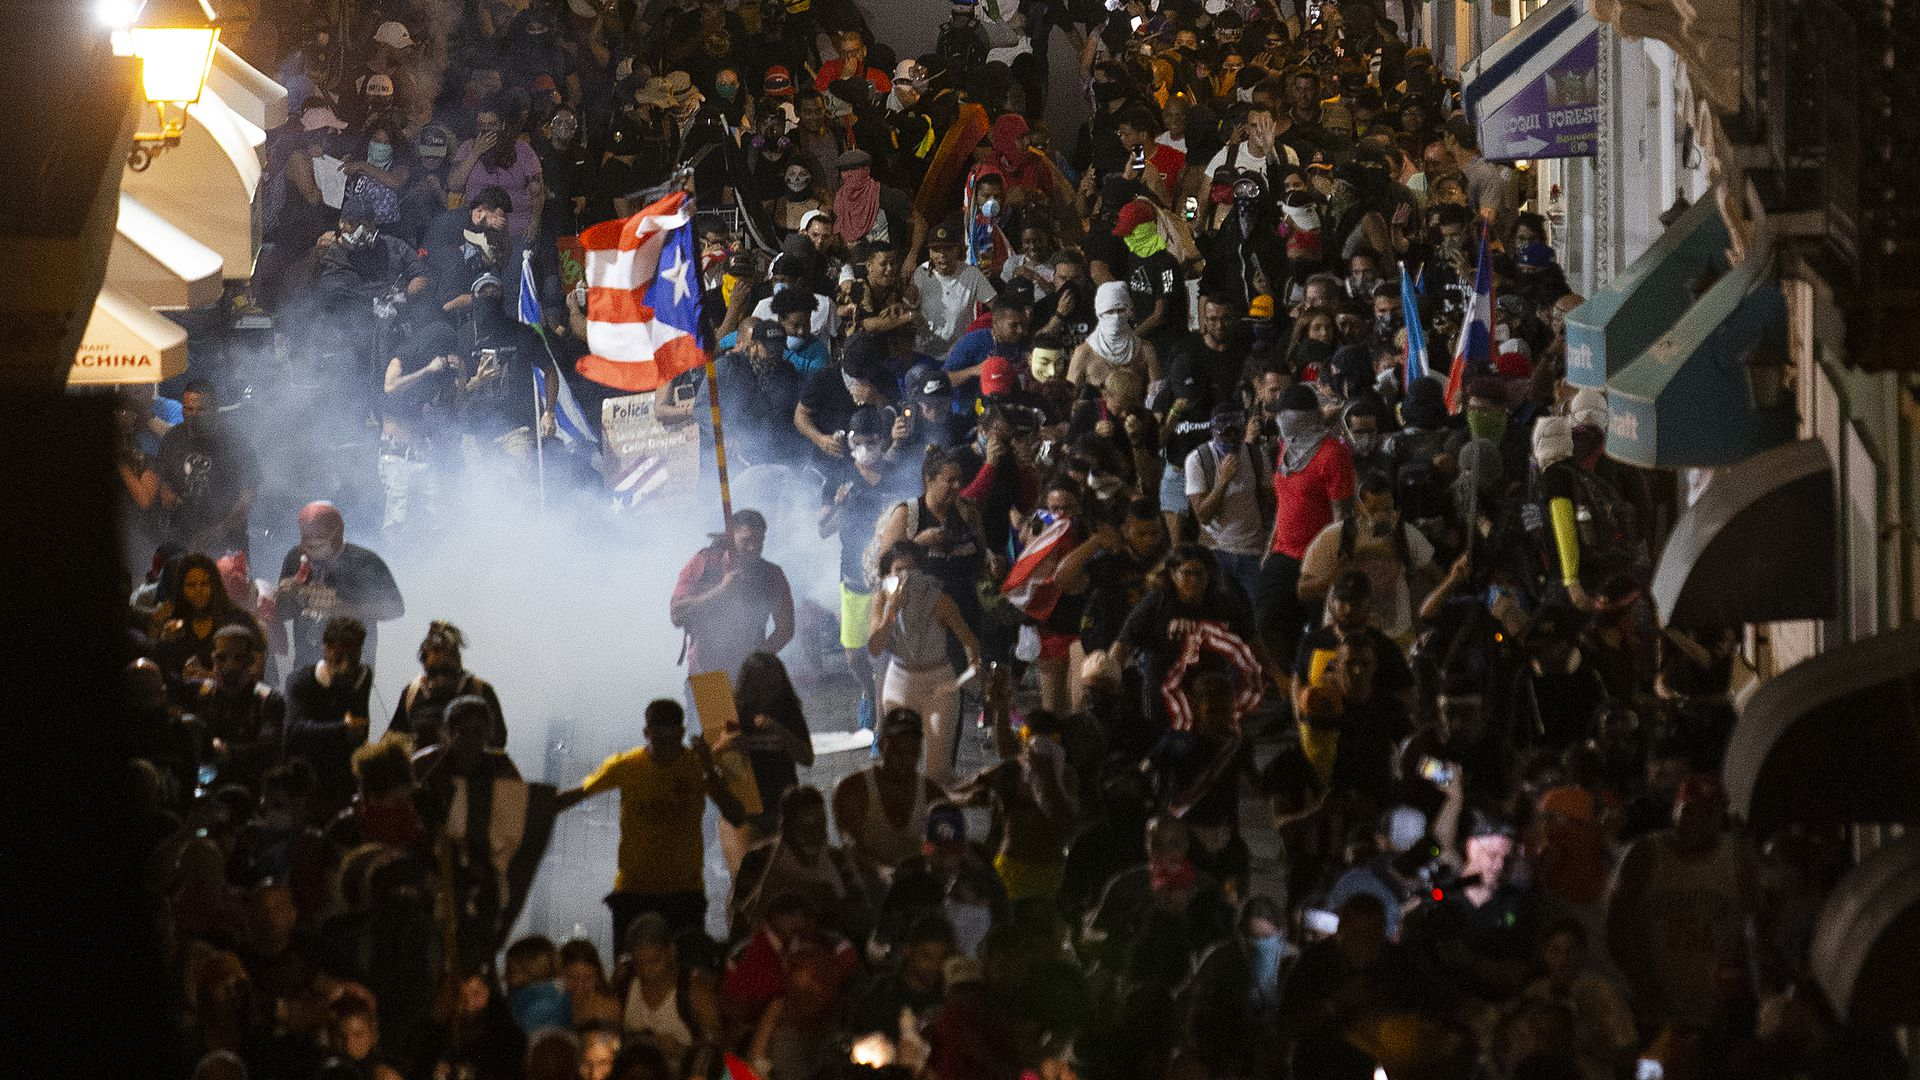 Police clash with protesters in front of the governor's mansion on July 23, 2019 in Old San Juan.